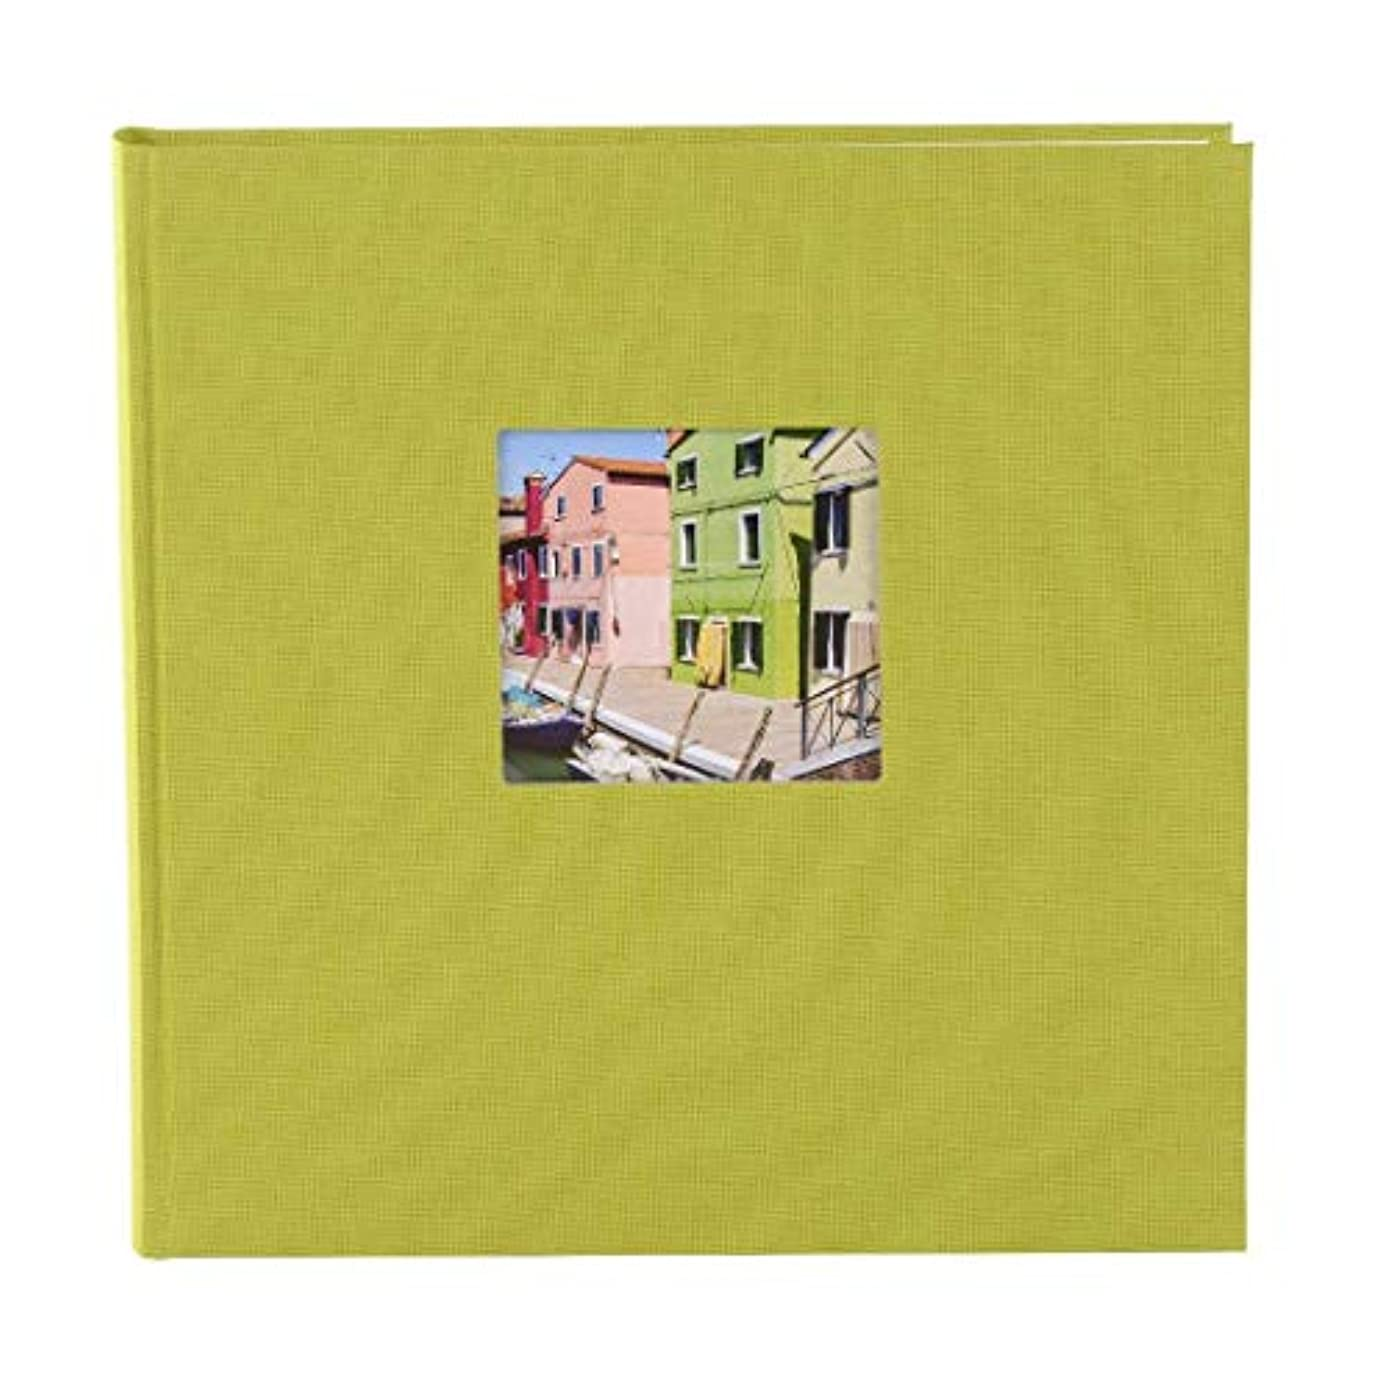 Goldbuch Photo Album with Cut-Out, Bella Vista, 25 x 25 cm, 60 White Pages with glassine dividers, Linen, Green, 24896